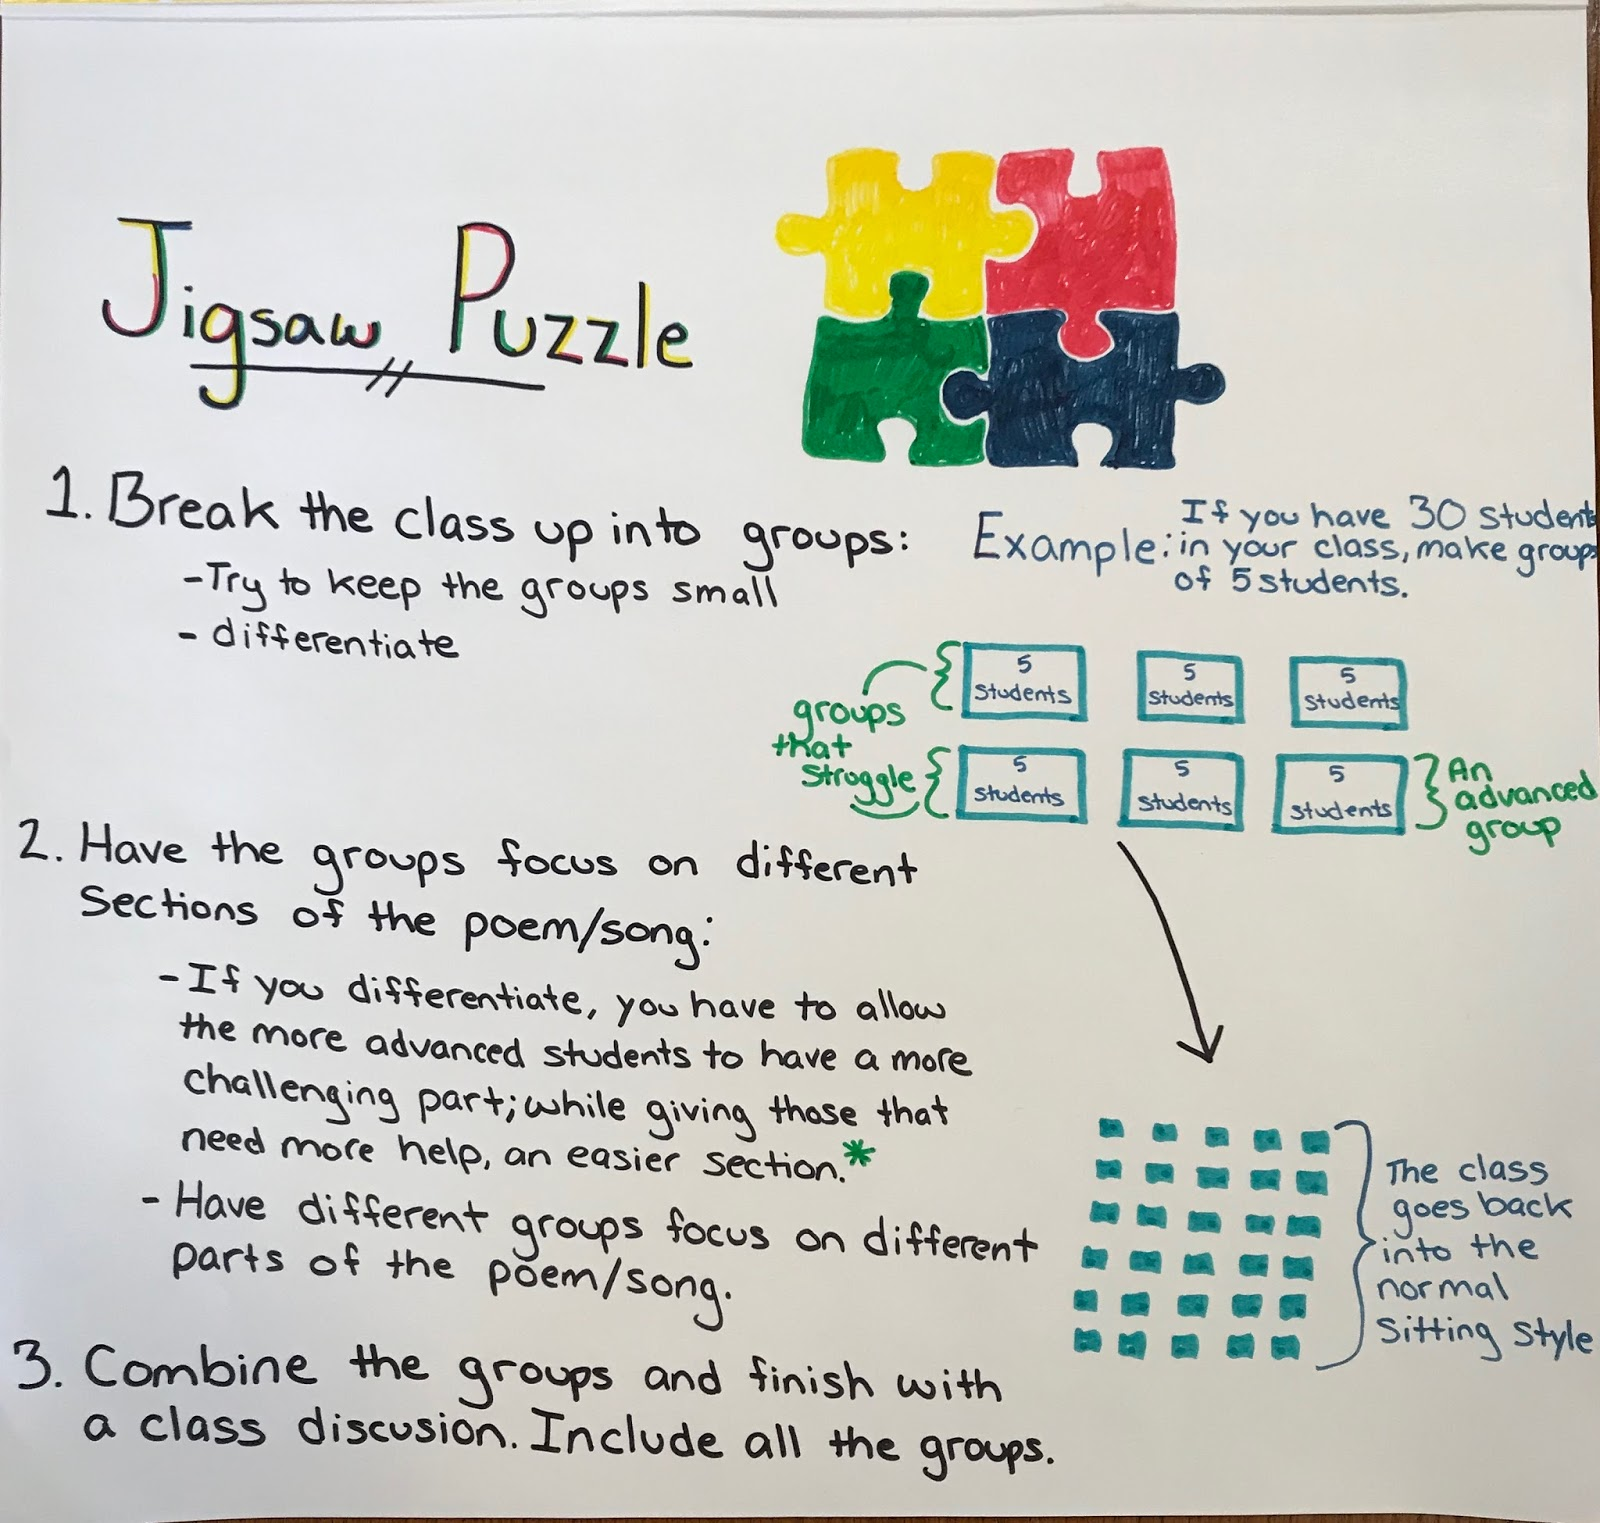 the jigsaw puzzle approach is a good way to get students into small groups below is an outline depicting how that might work logistically